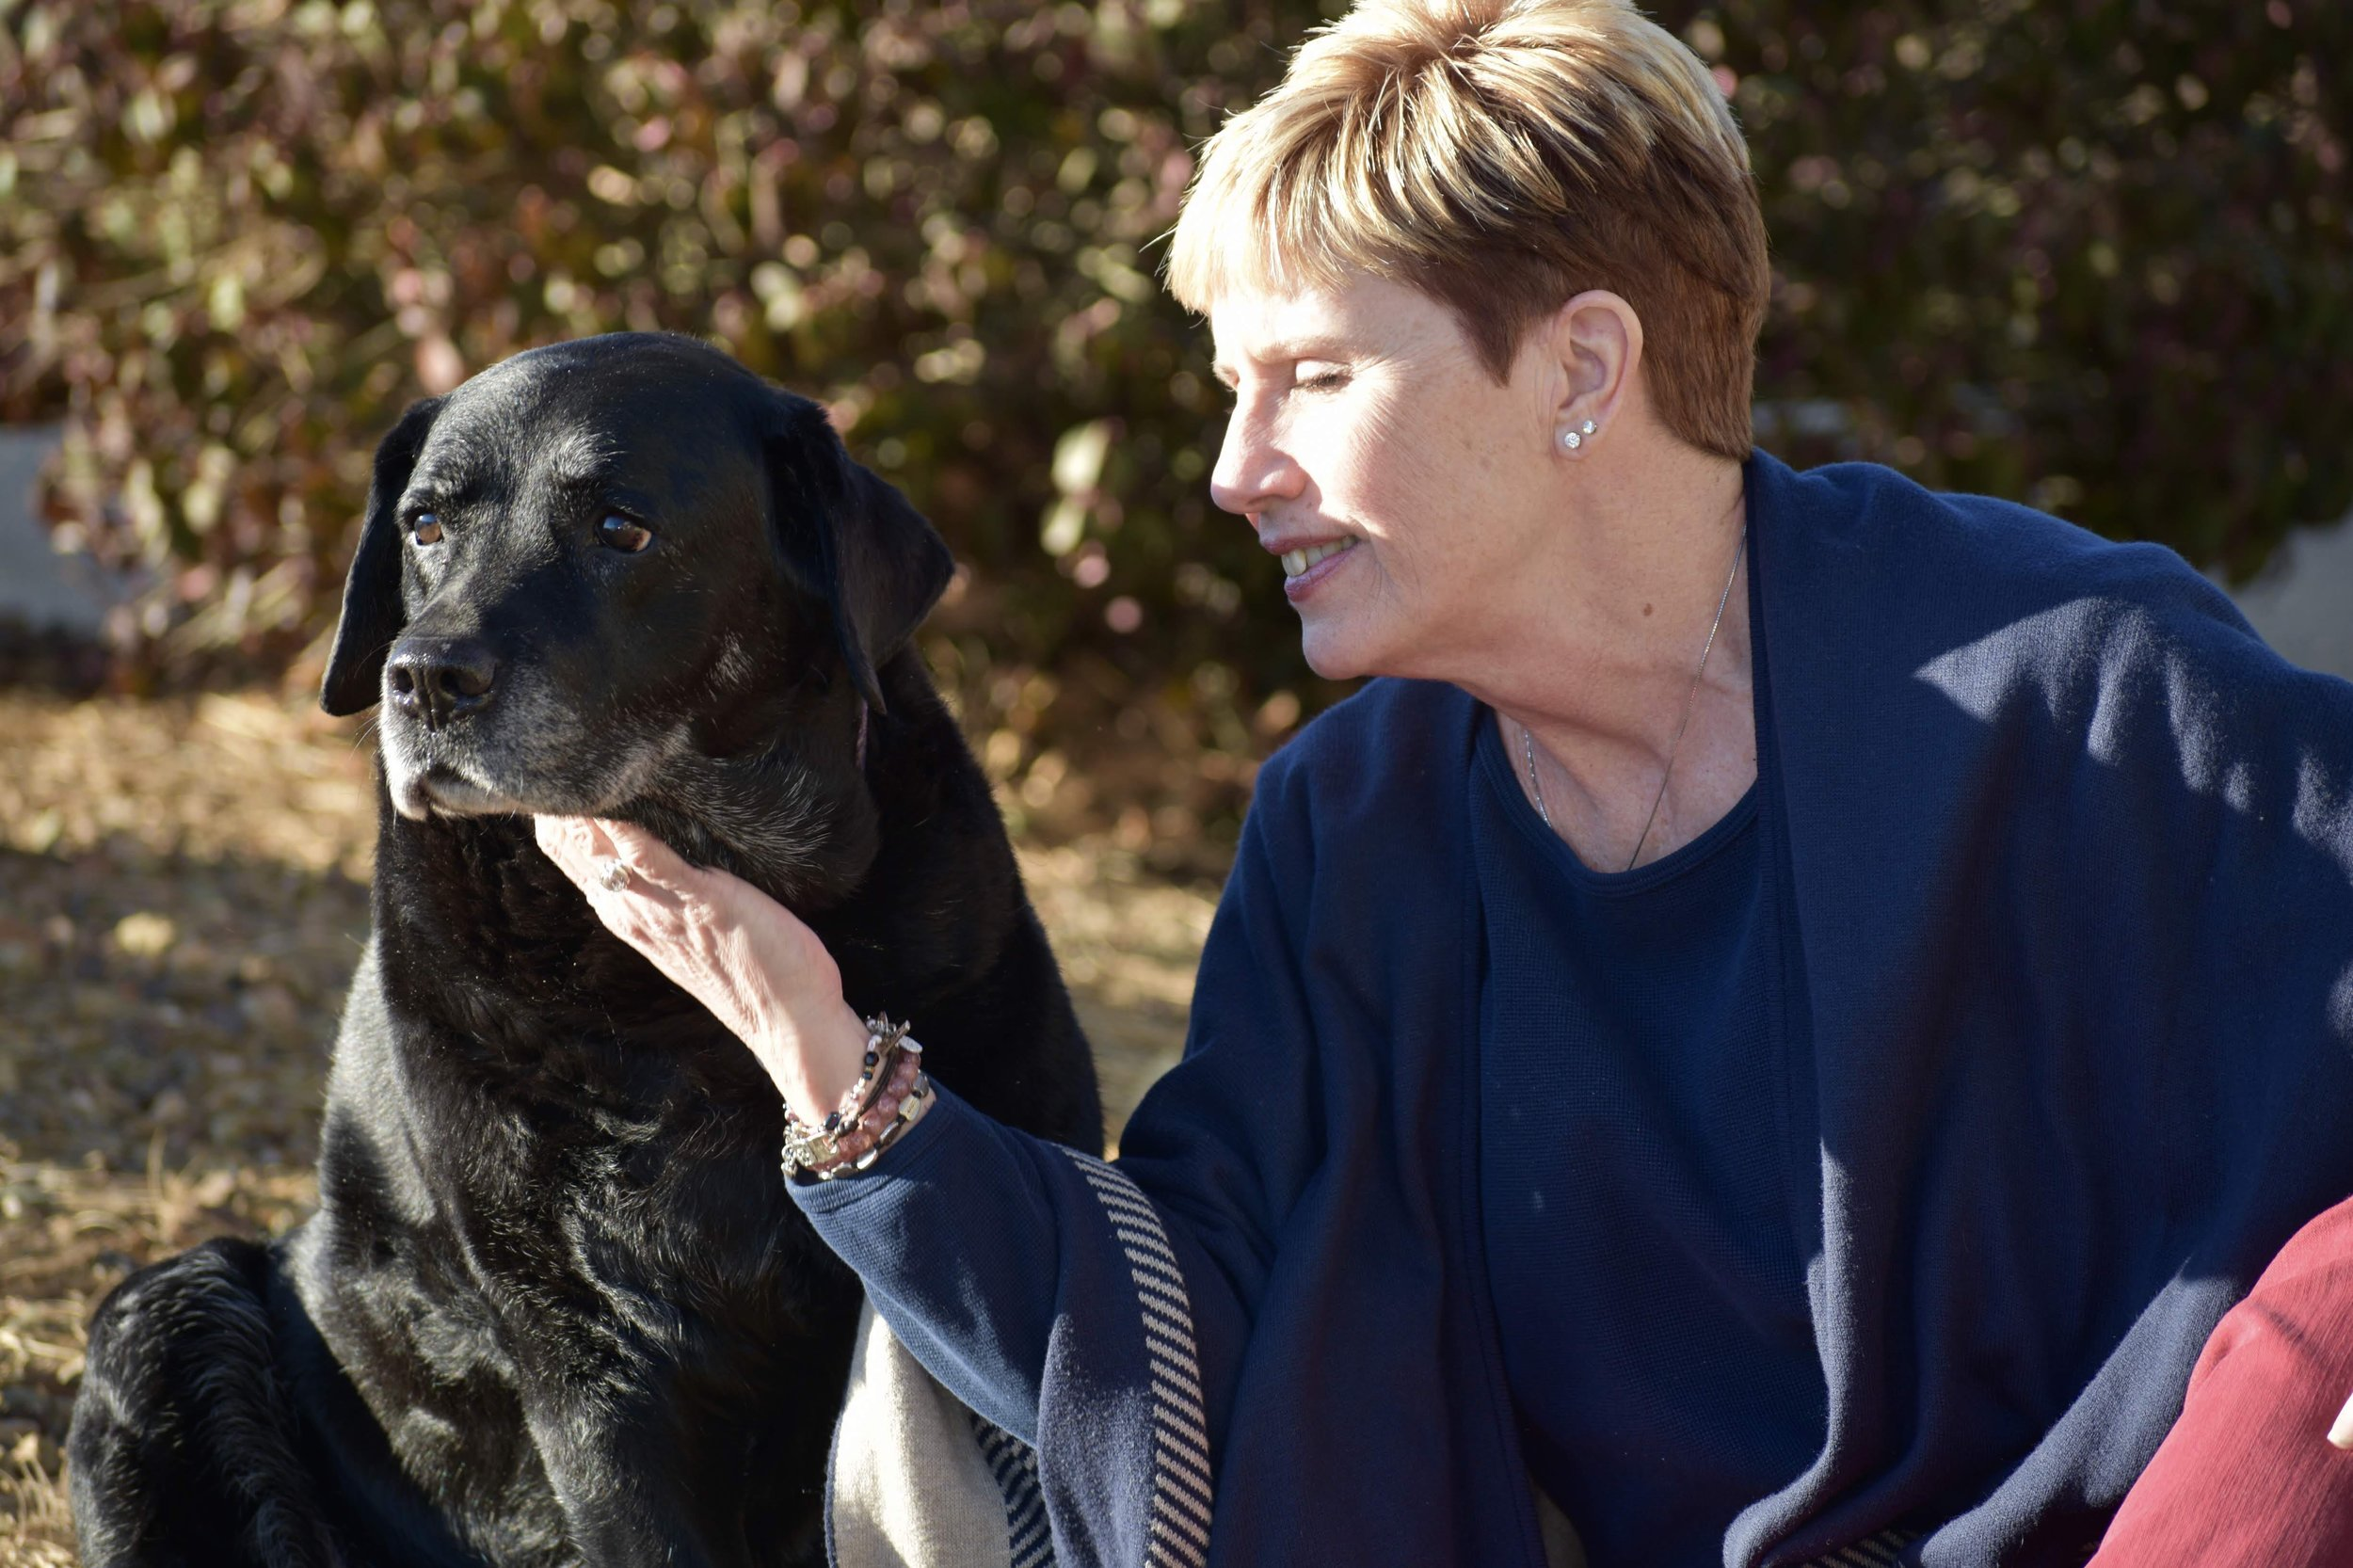 Owner Pam Sculthorp and her dog and best friend Dakota